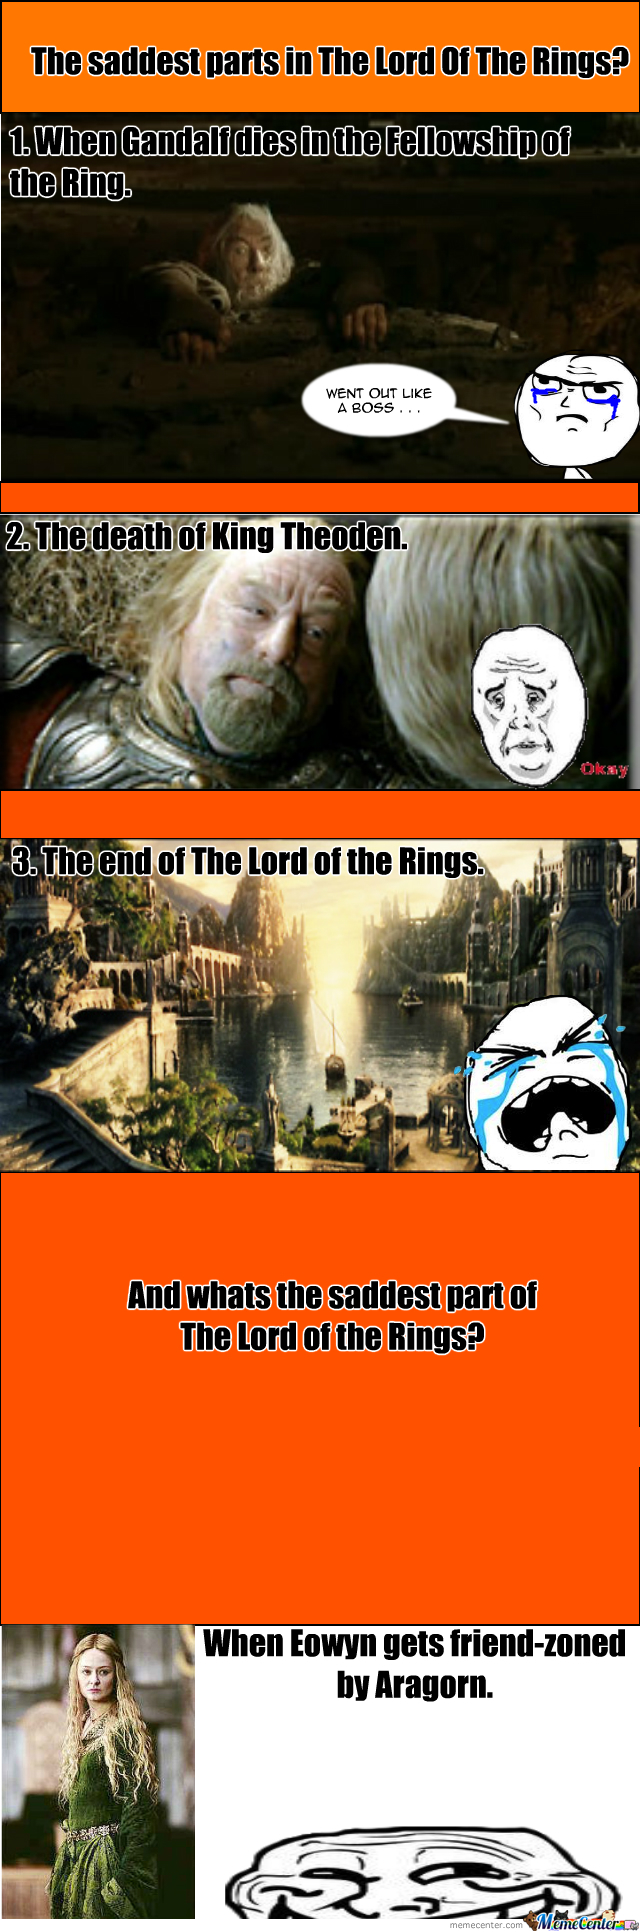 The Saddest Parts In Lotr